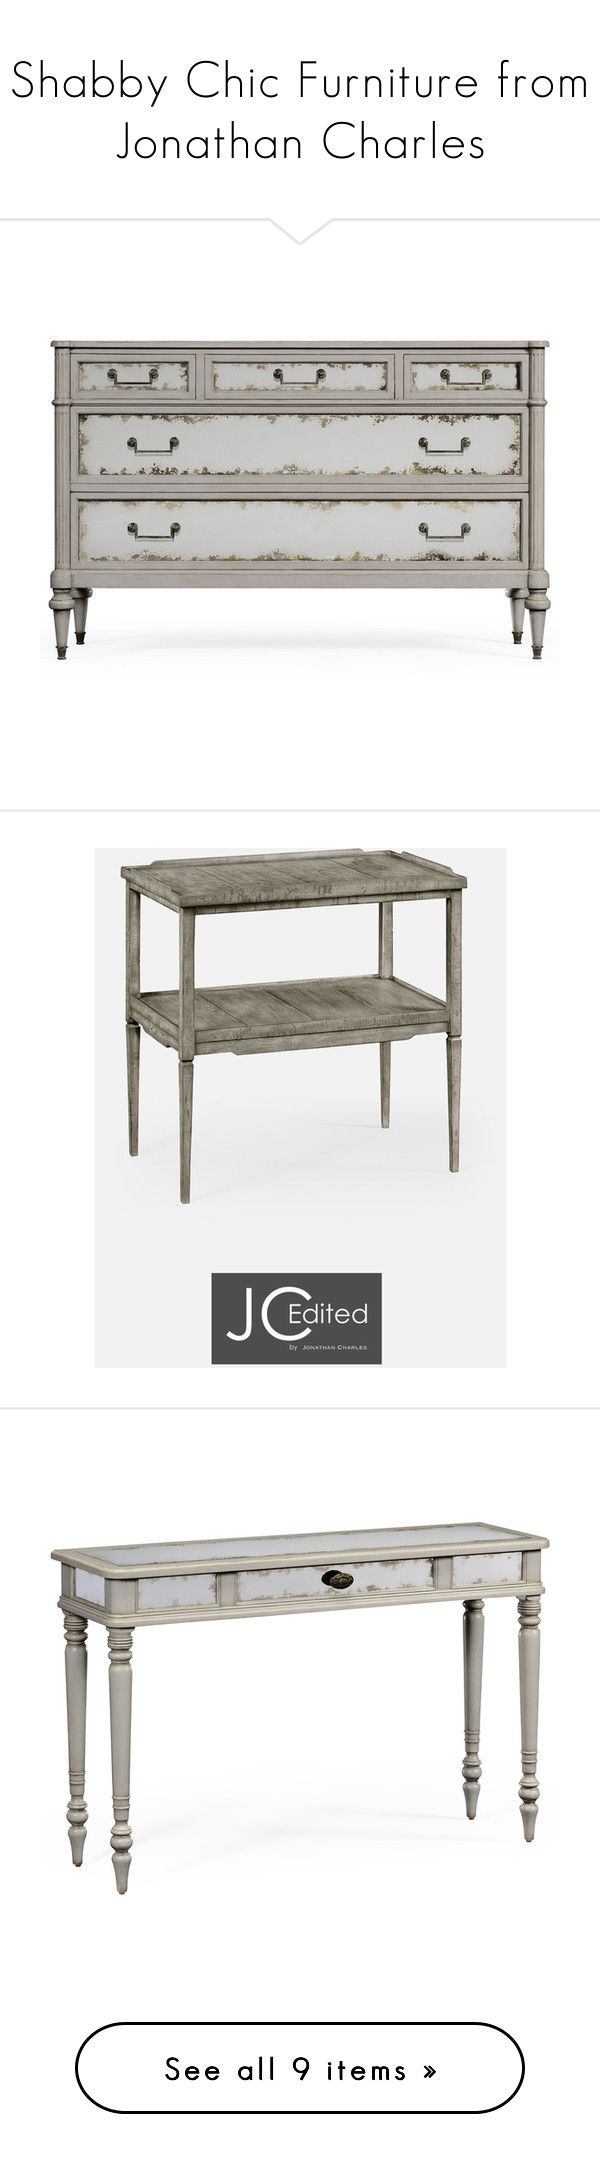 """Shabby Chic Furniture from Jonathan Charles"" by pavilion-broadway ❤ liked on Polyvore featuring home, furniture, storage & shelves, dressers, distressed gray dresser, distressed dresser, distressed painted dresser, grey bedroom dressers, gray dresser and tables"